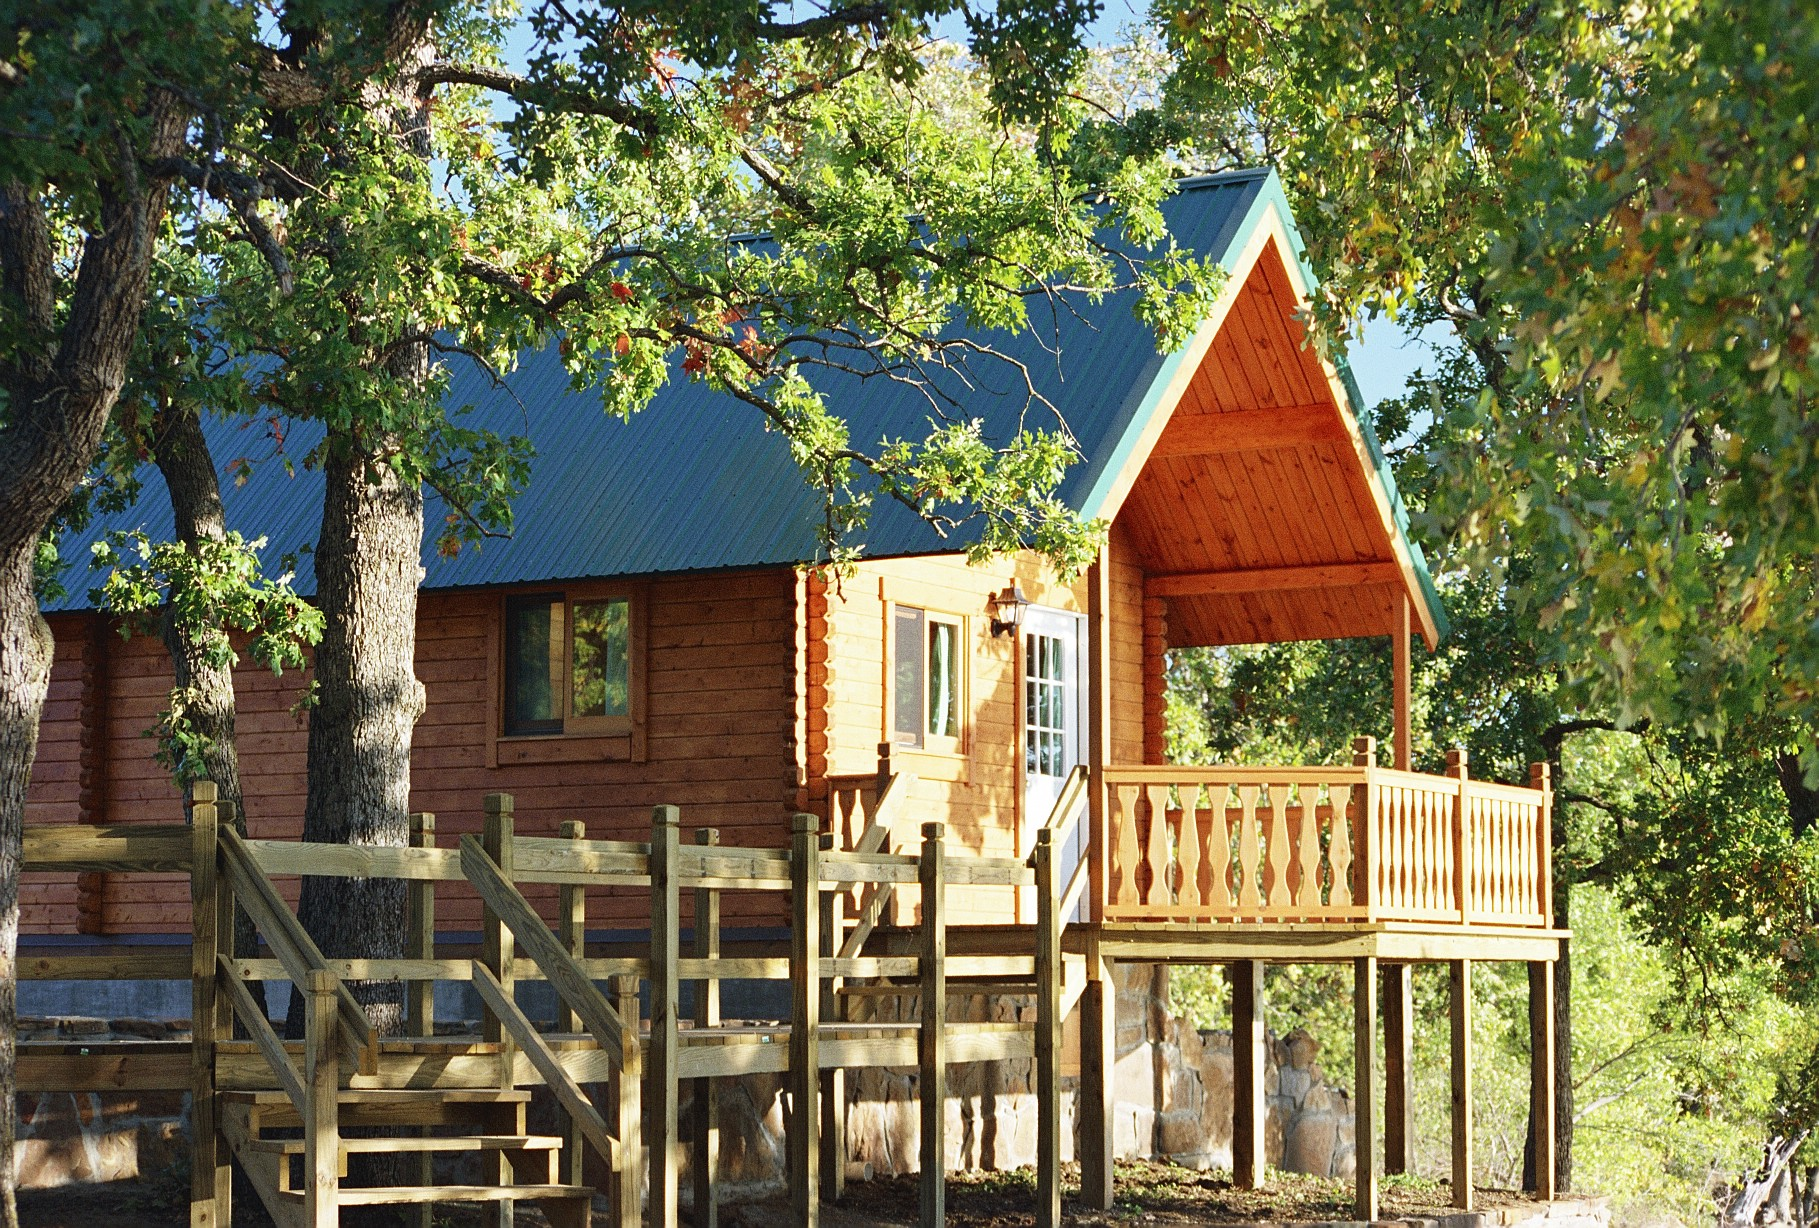 w homes blakley properties offering primitive is kansas united in rentals living country cabin rv business ups offers an hobbit park of establised and cabins the wi rental hook with quarters blakely home campsites